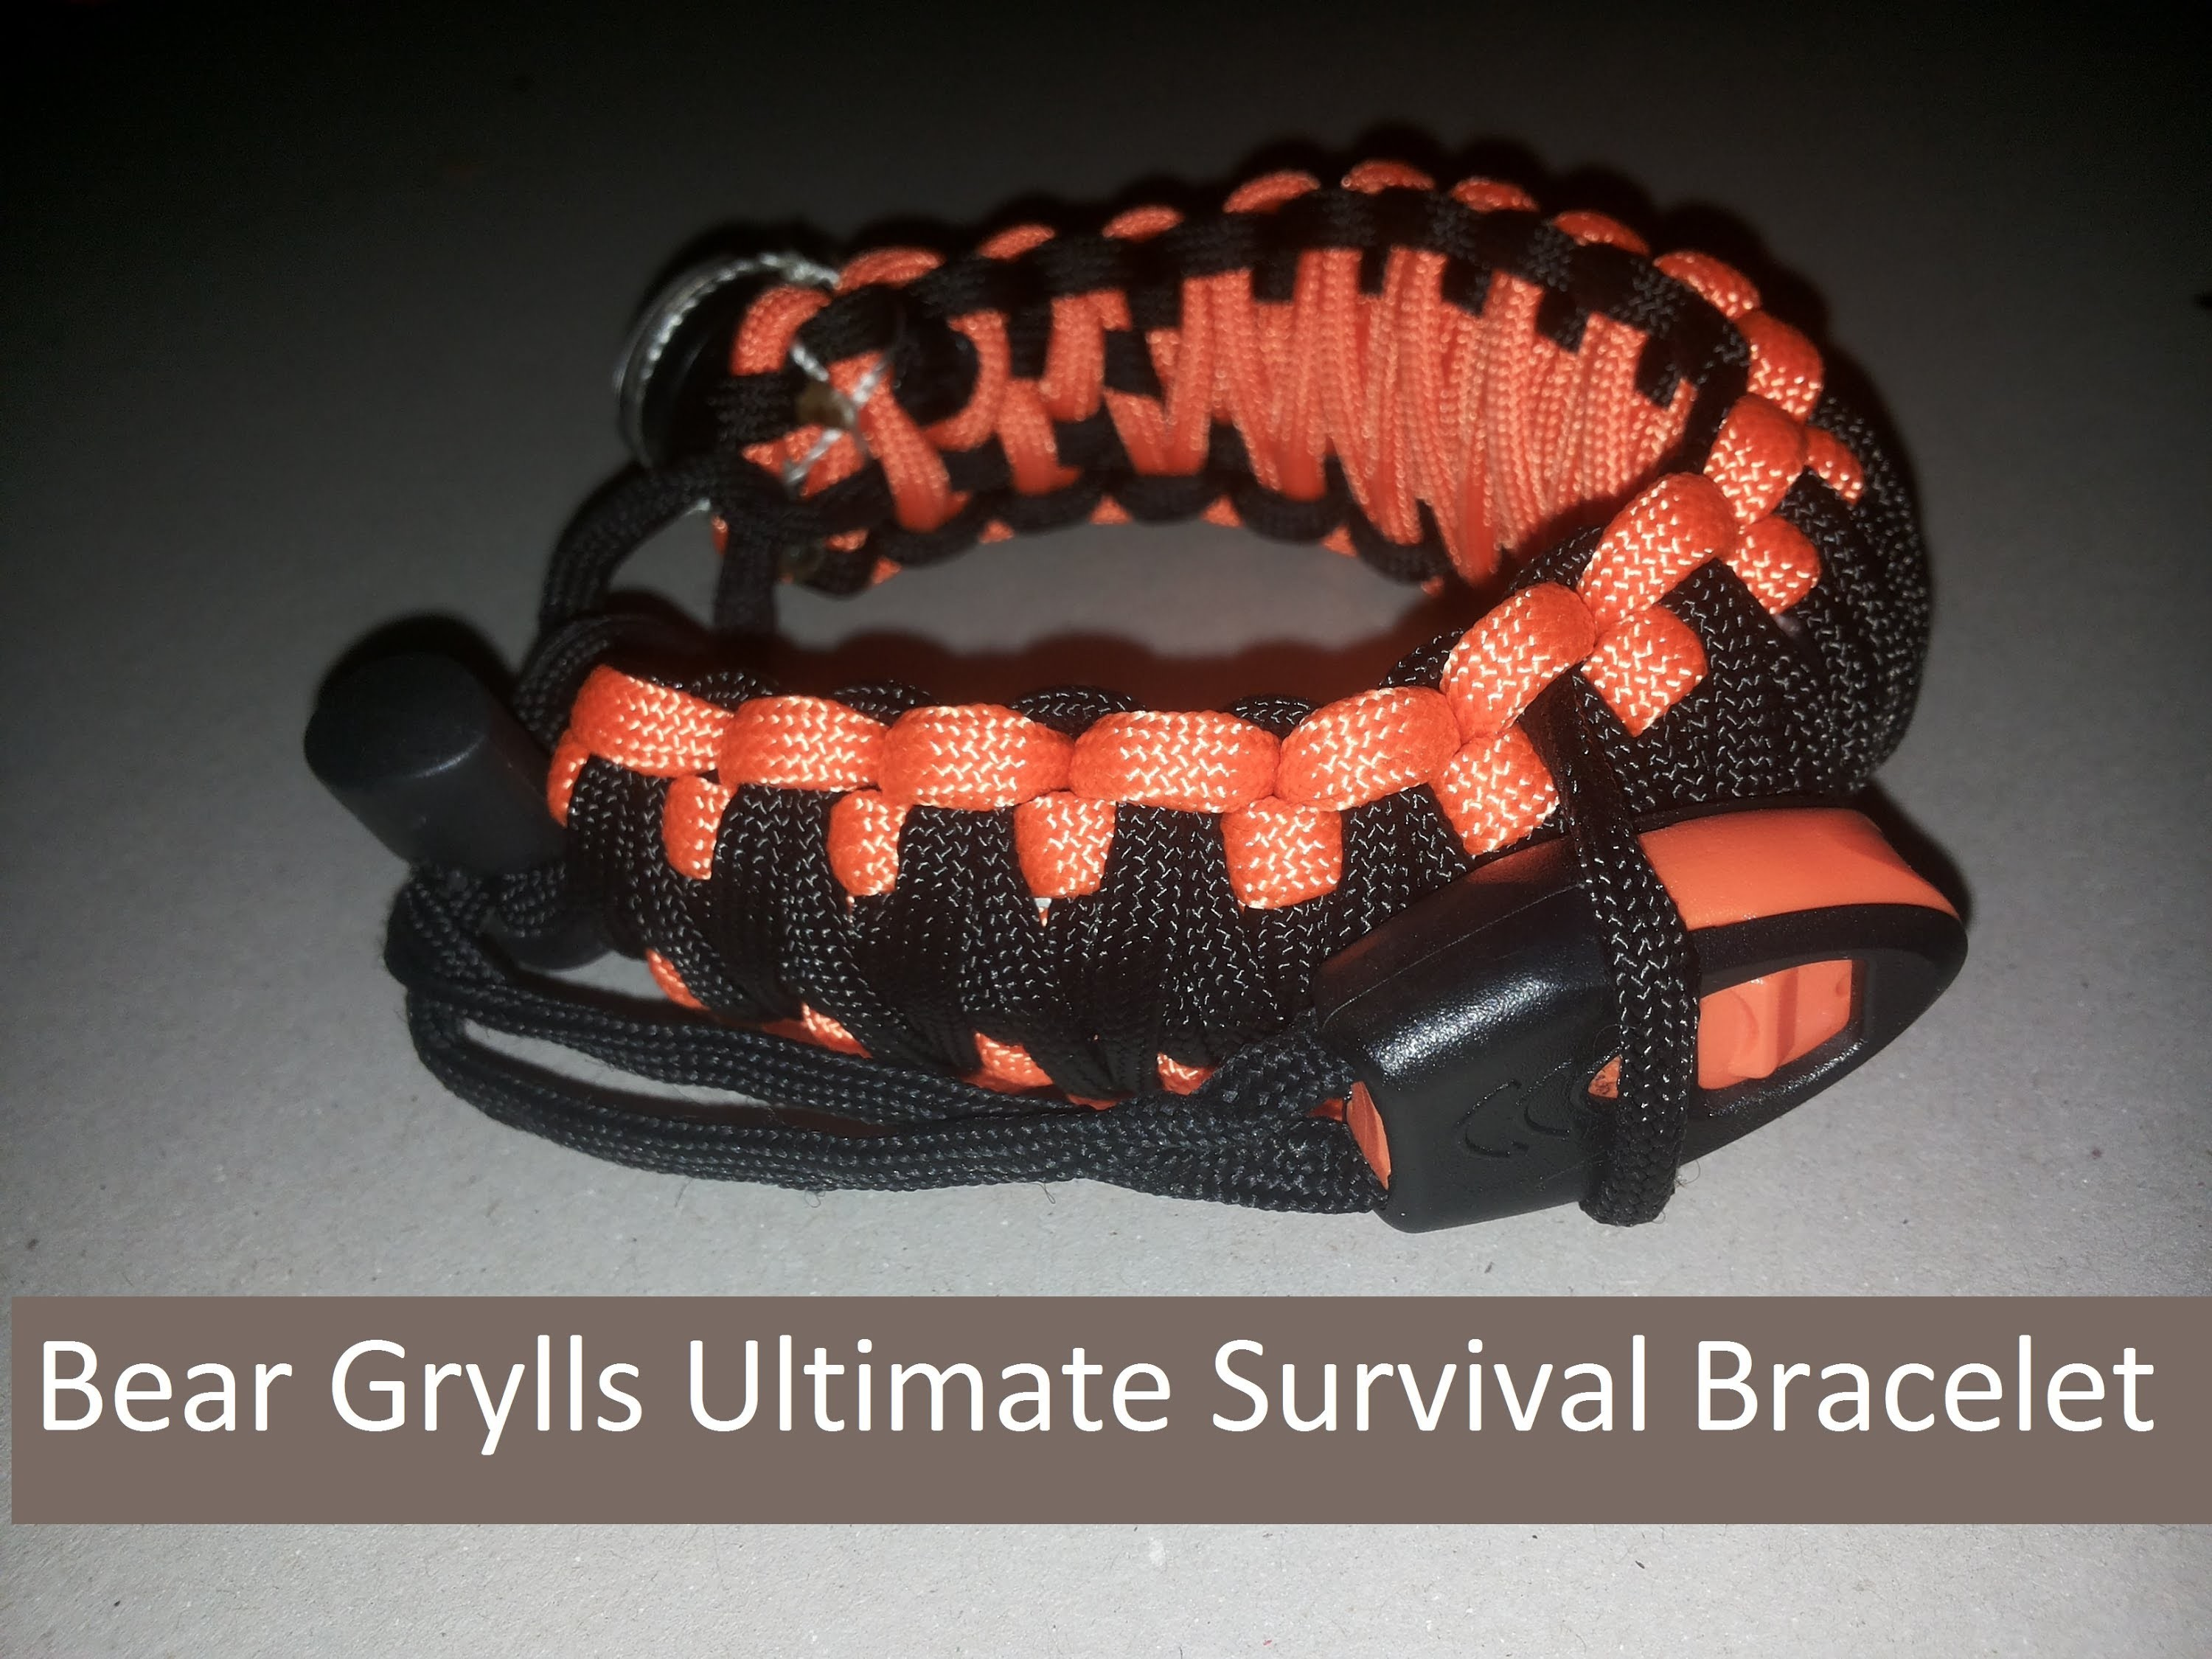 How To: Bear Grylls Ultimate Pro Survival Bracelet DIY Alternative